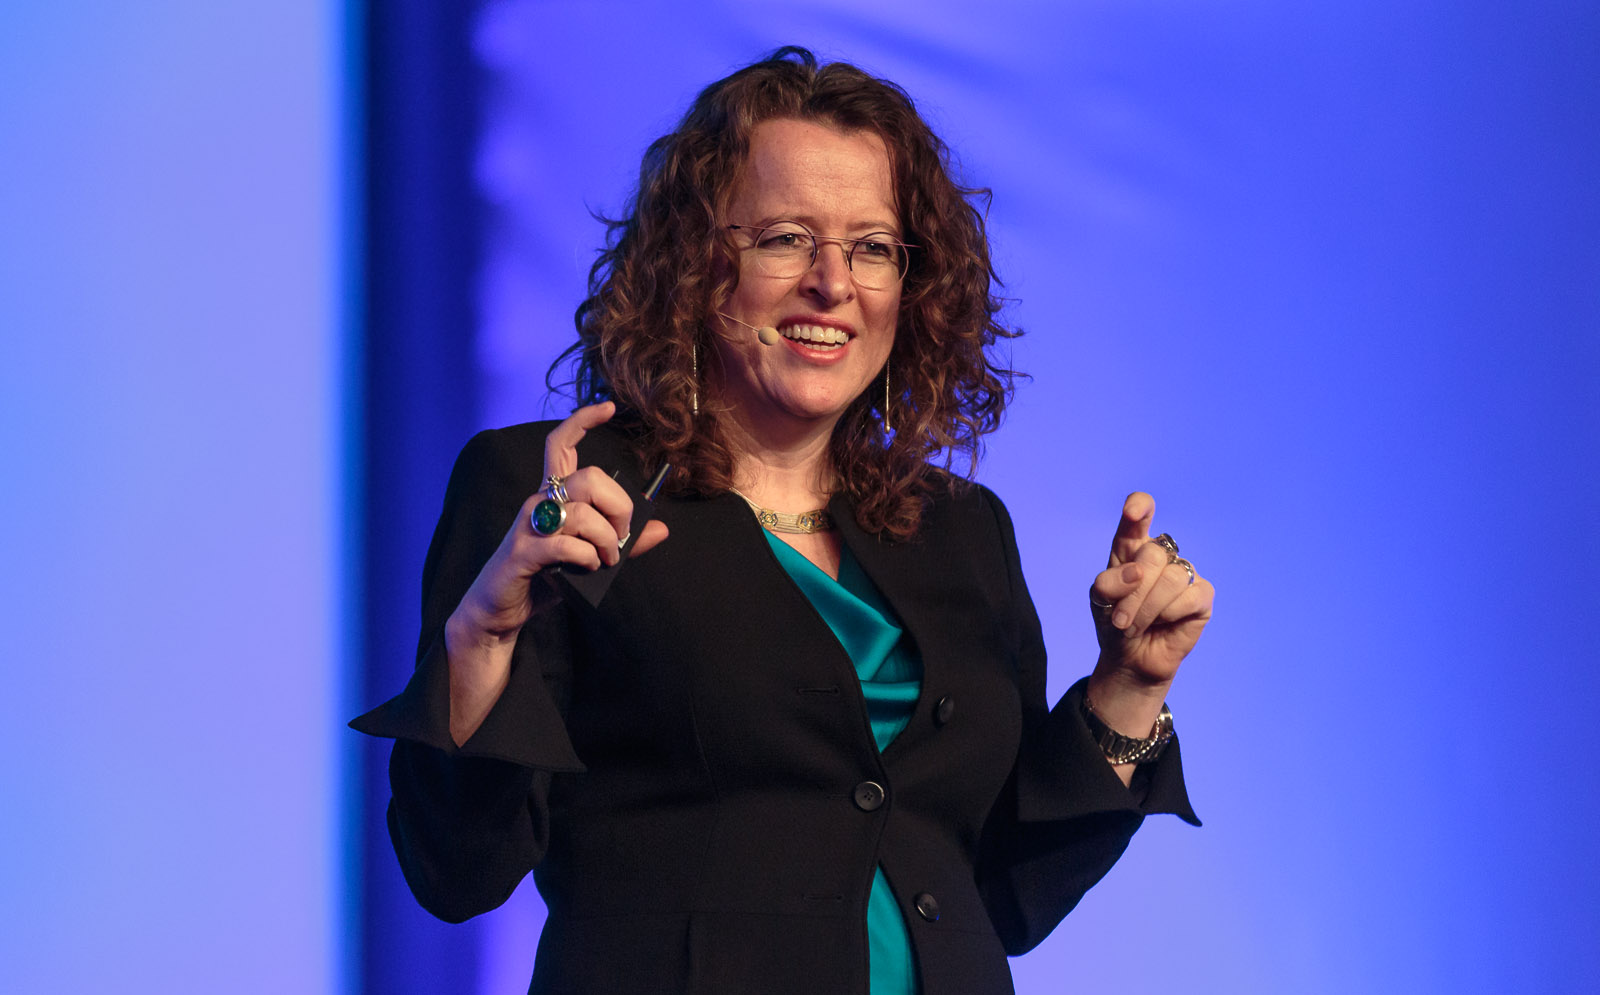 Genevieve Bell, Intel's anthropologist, speaking at Mobile World Congress.